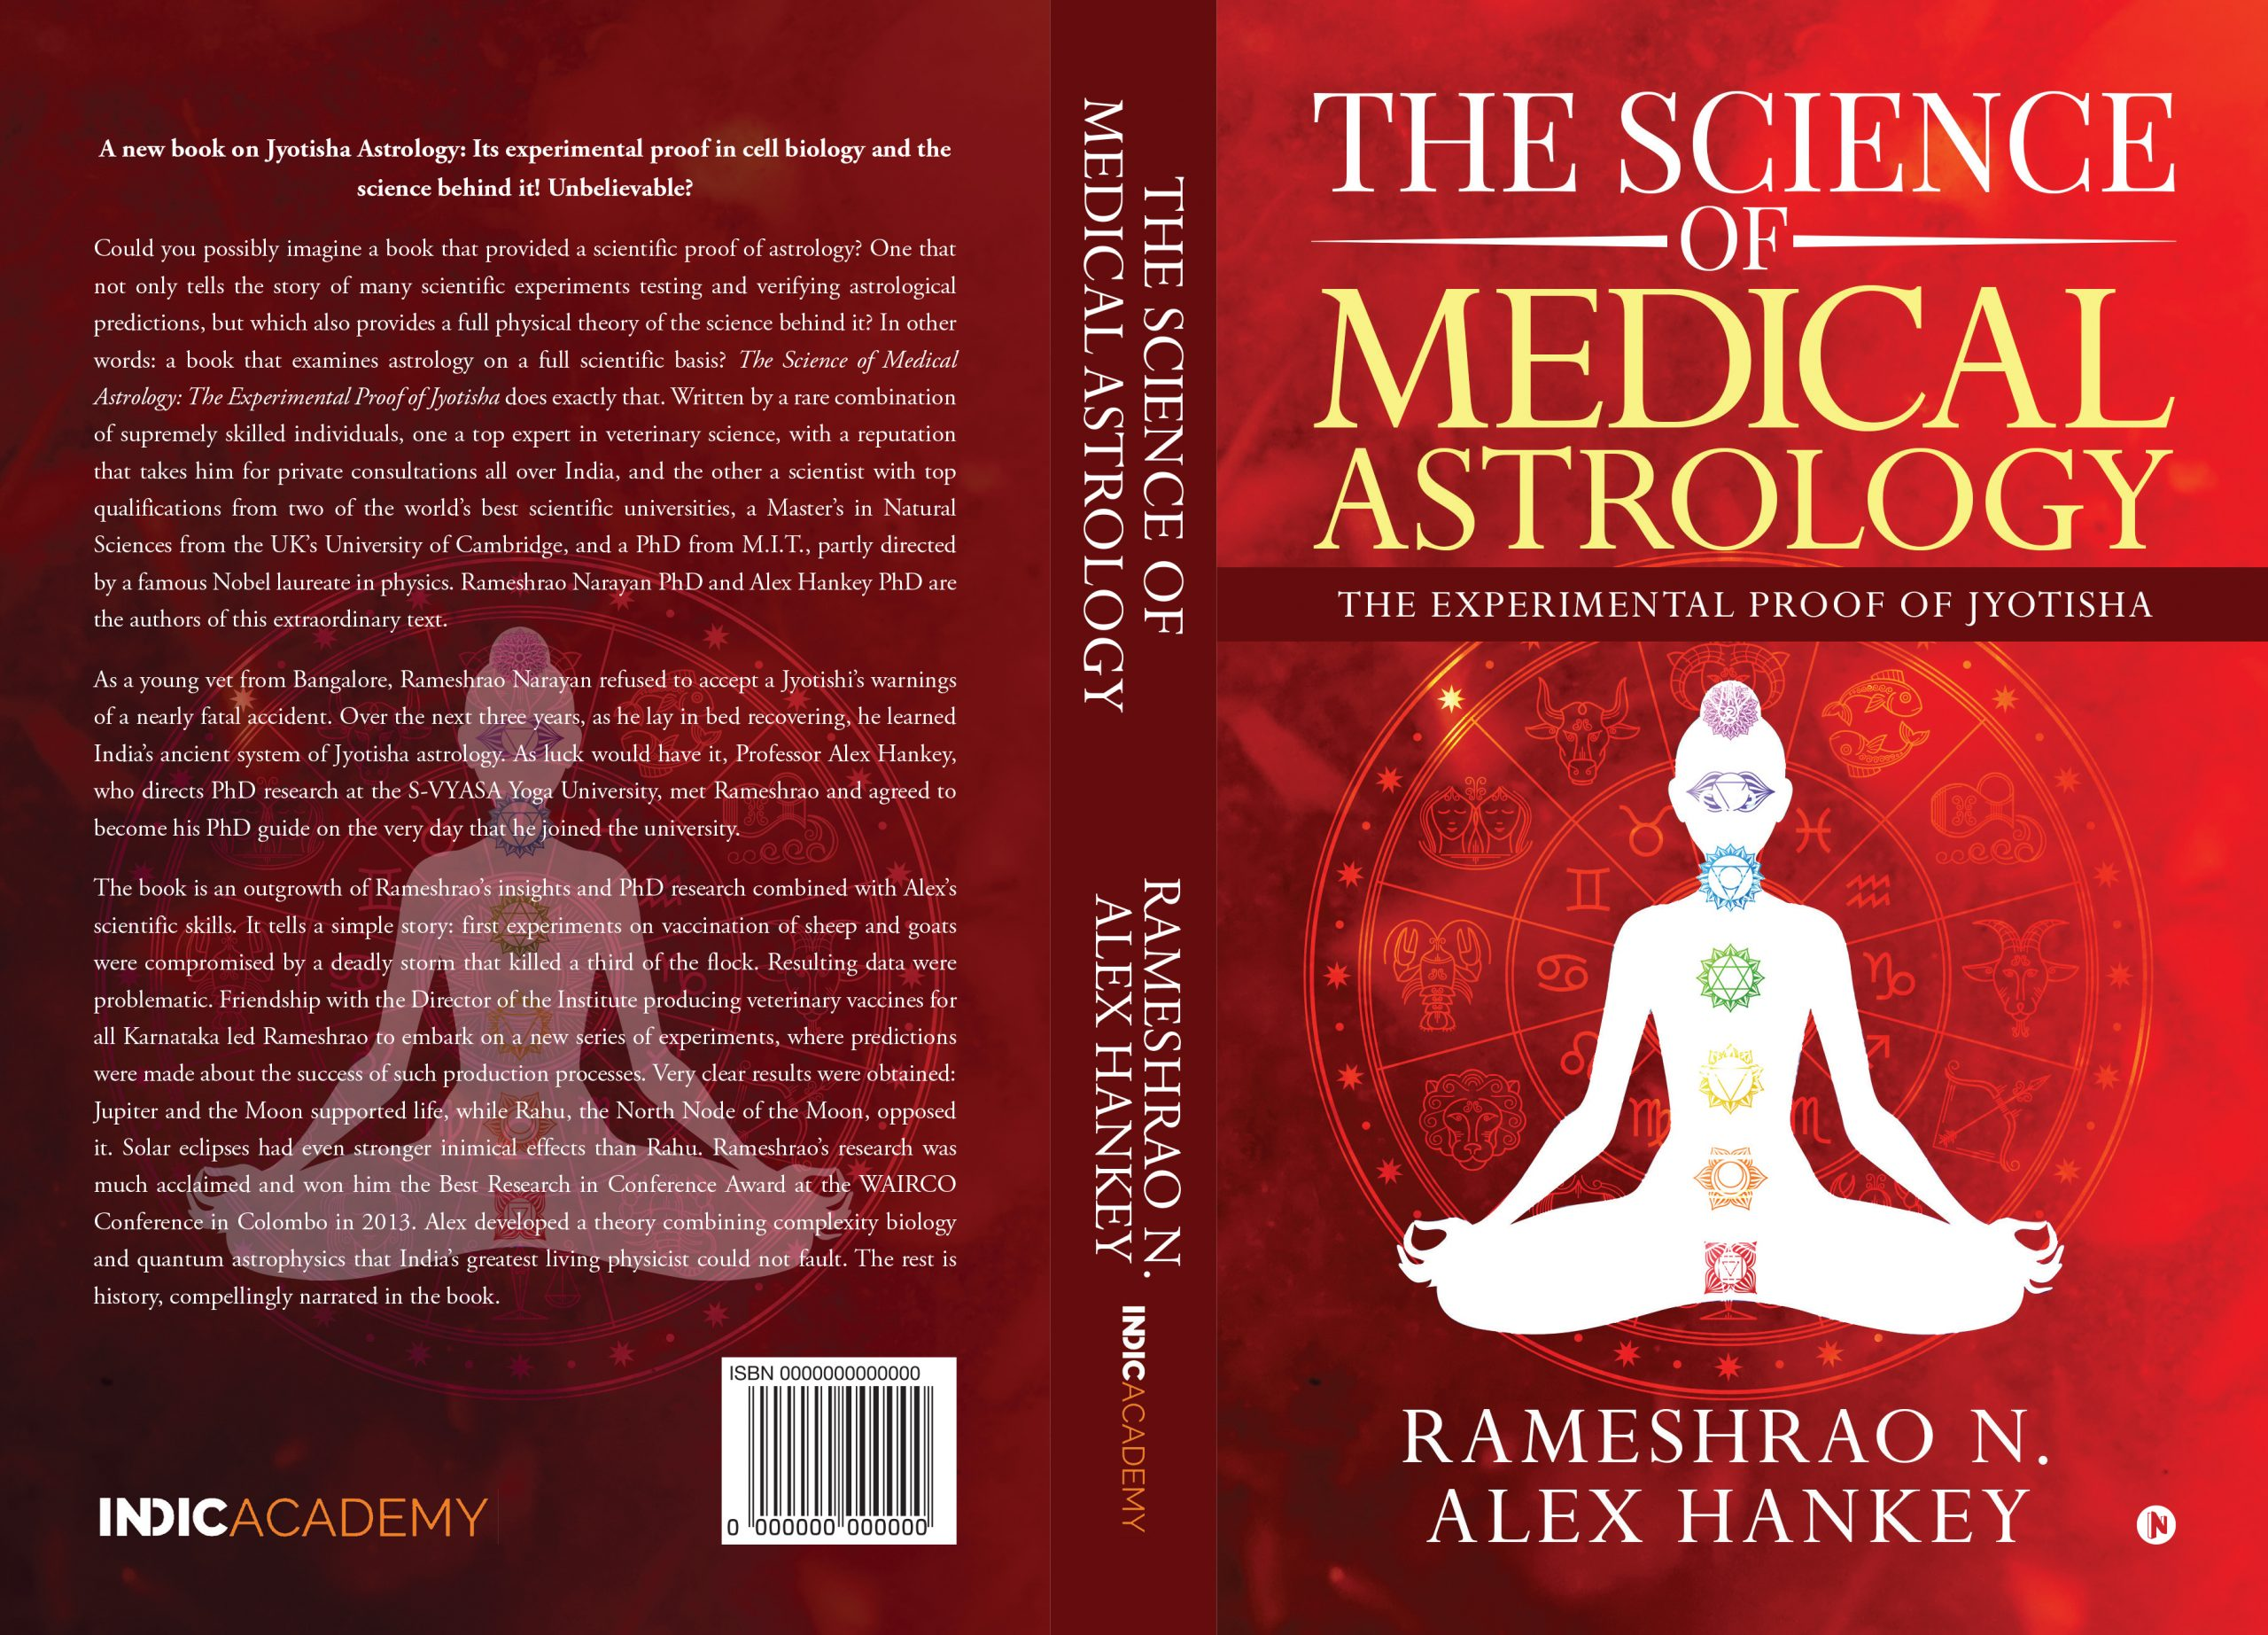 THE SCIENCE of MEDICAL ASTROLOGY